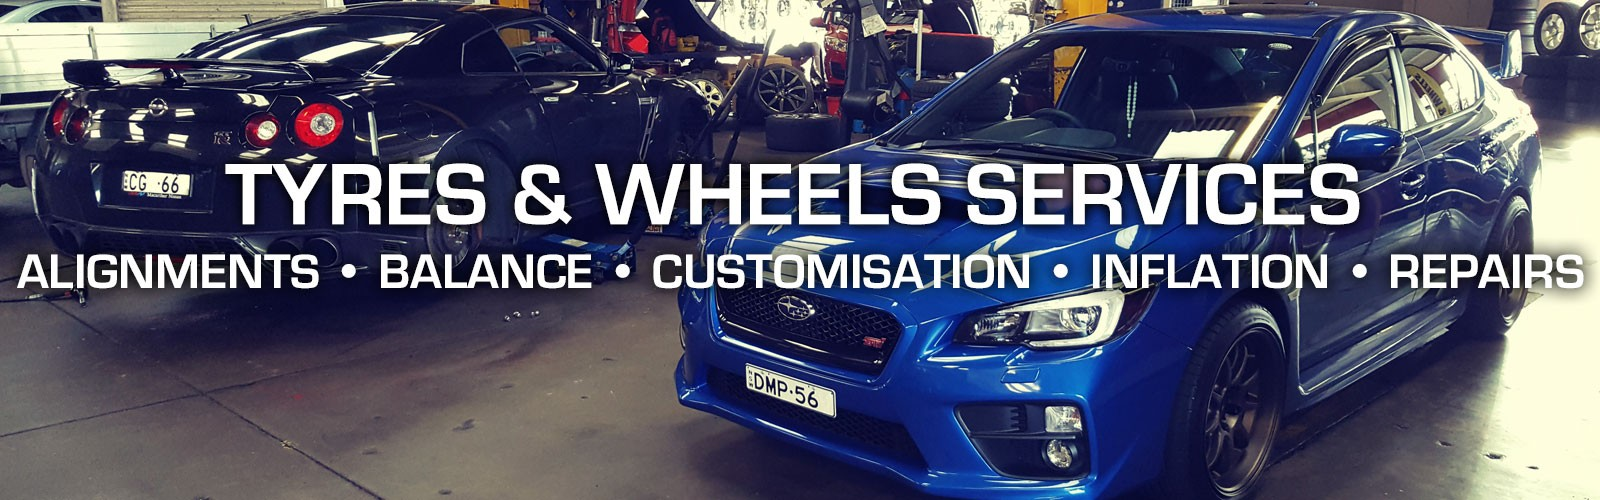 Tyres & Wheels Services